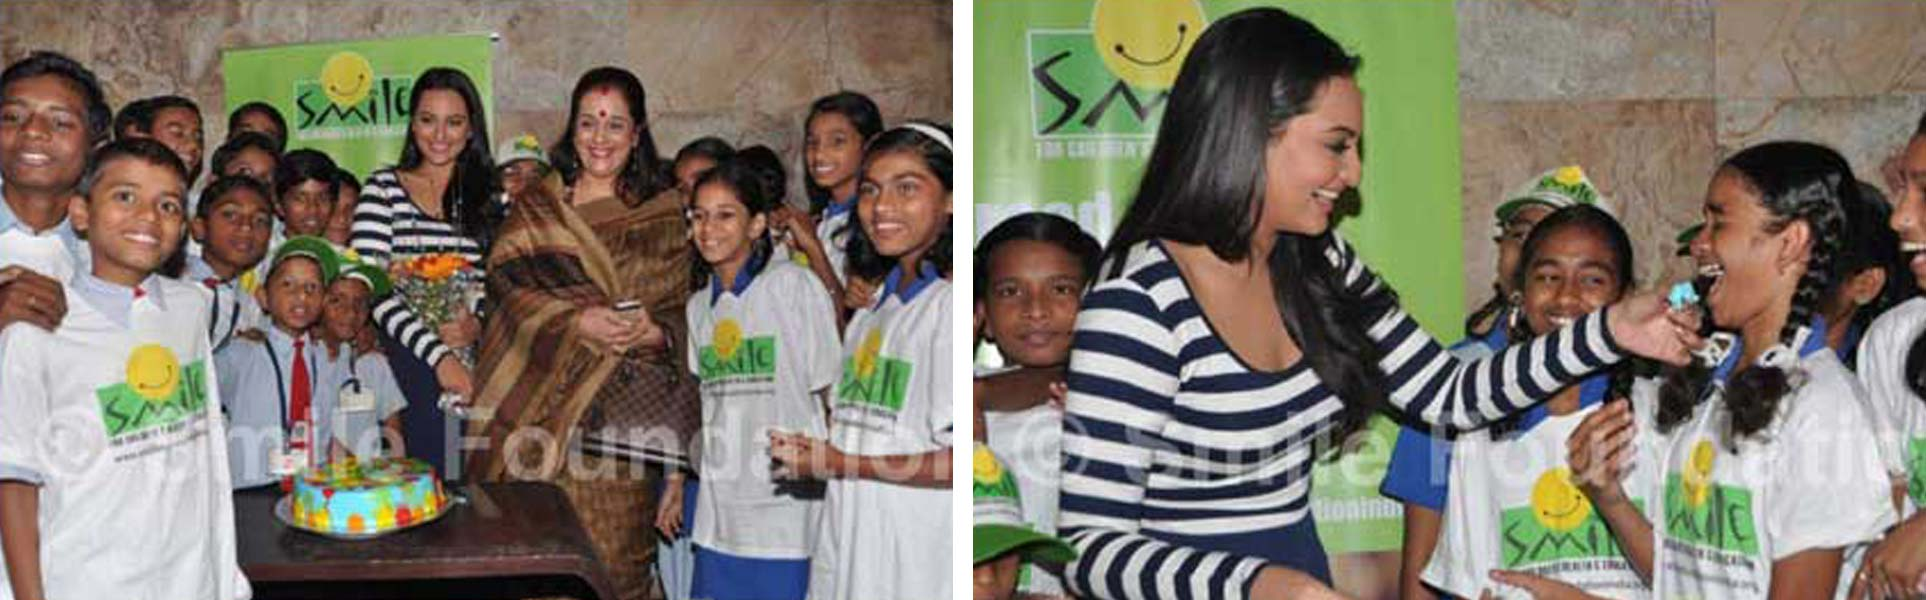 Sonakshi Sinha shares Dabangg 2 success with Smile Foundation children